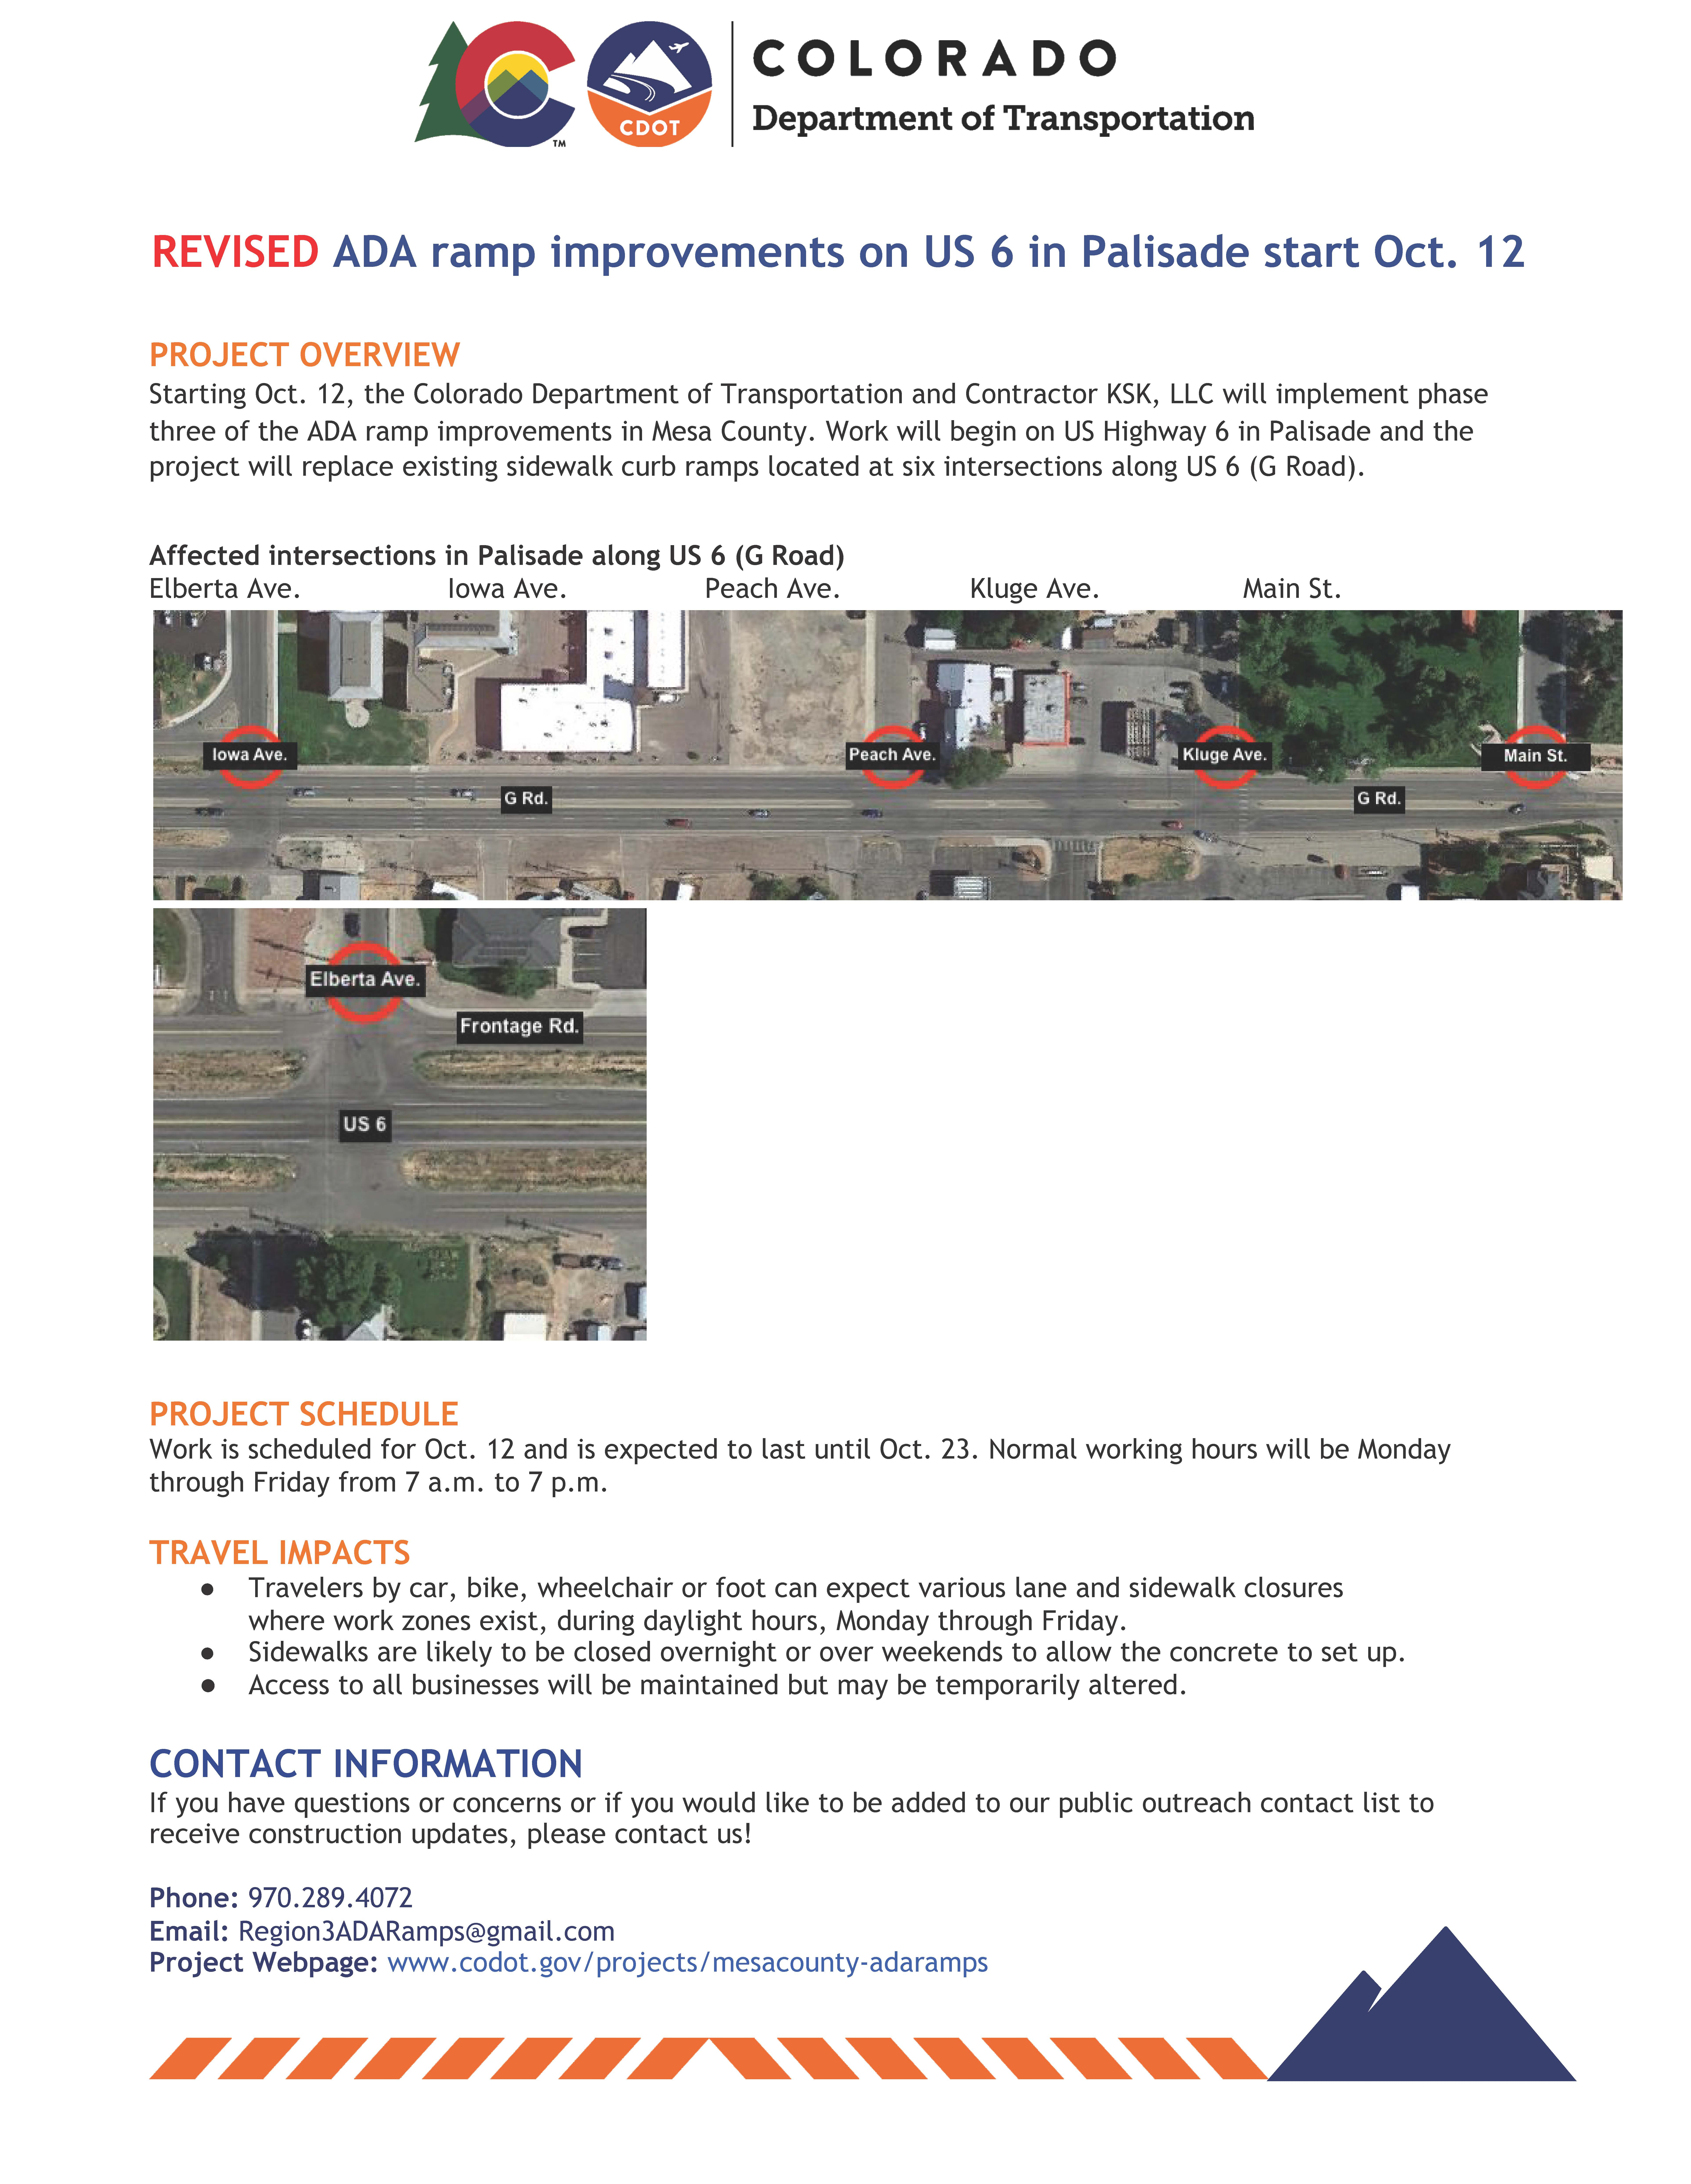 CDOT ADA Ramp Improvements